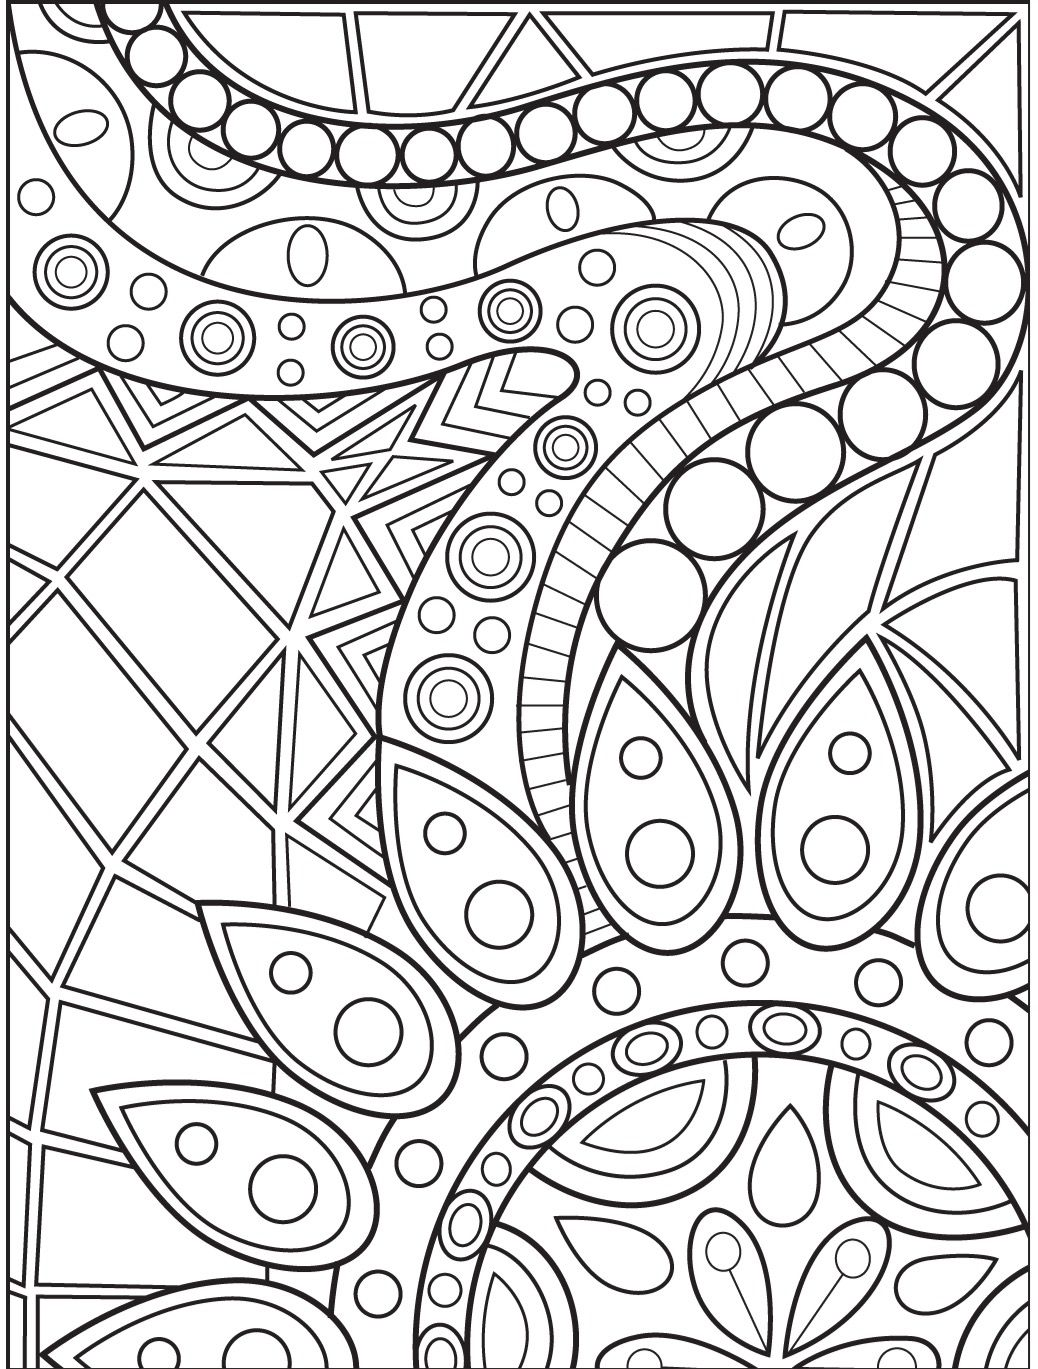 Abstract coloring page on Colorish: coloring book app for adults by  GoodSoftTech | Abstract coloring pages, Mandala coloring pages, Geometric coloring  pages